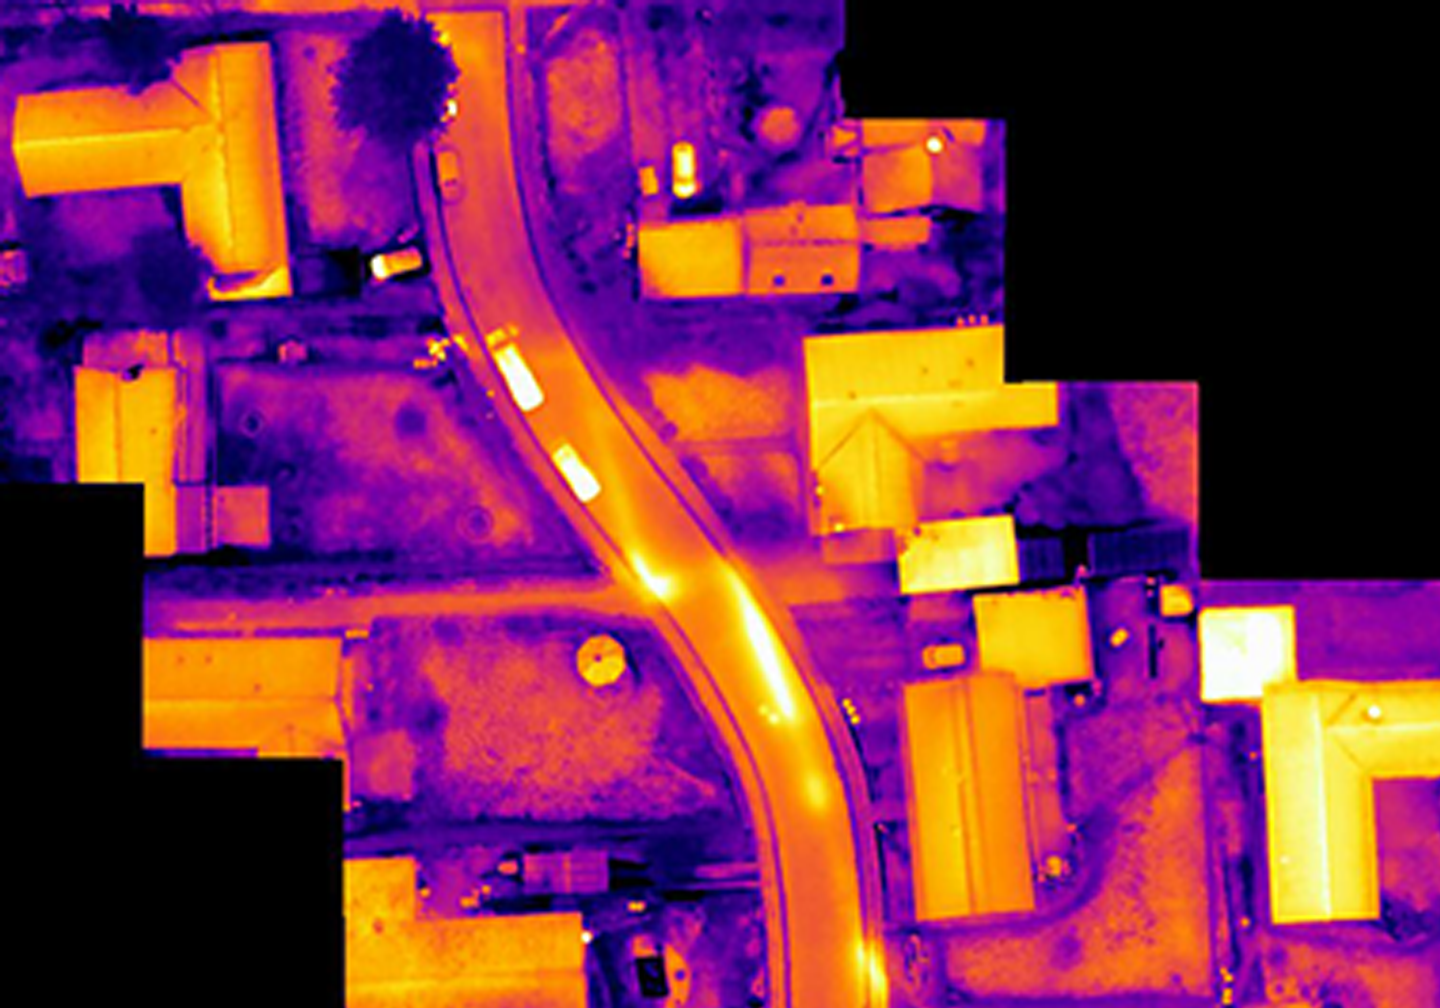 BL Thermography